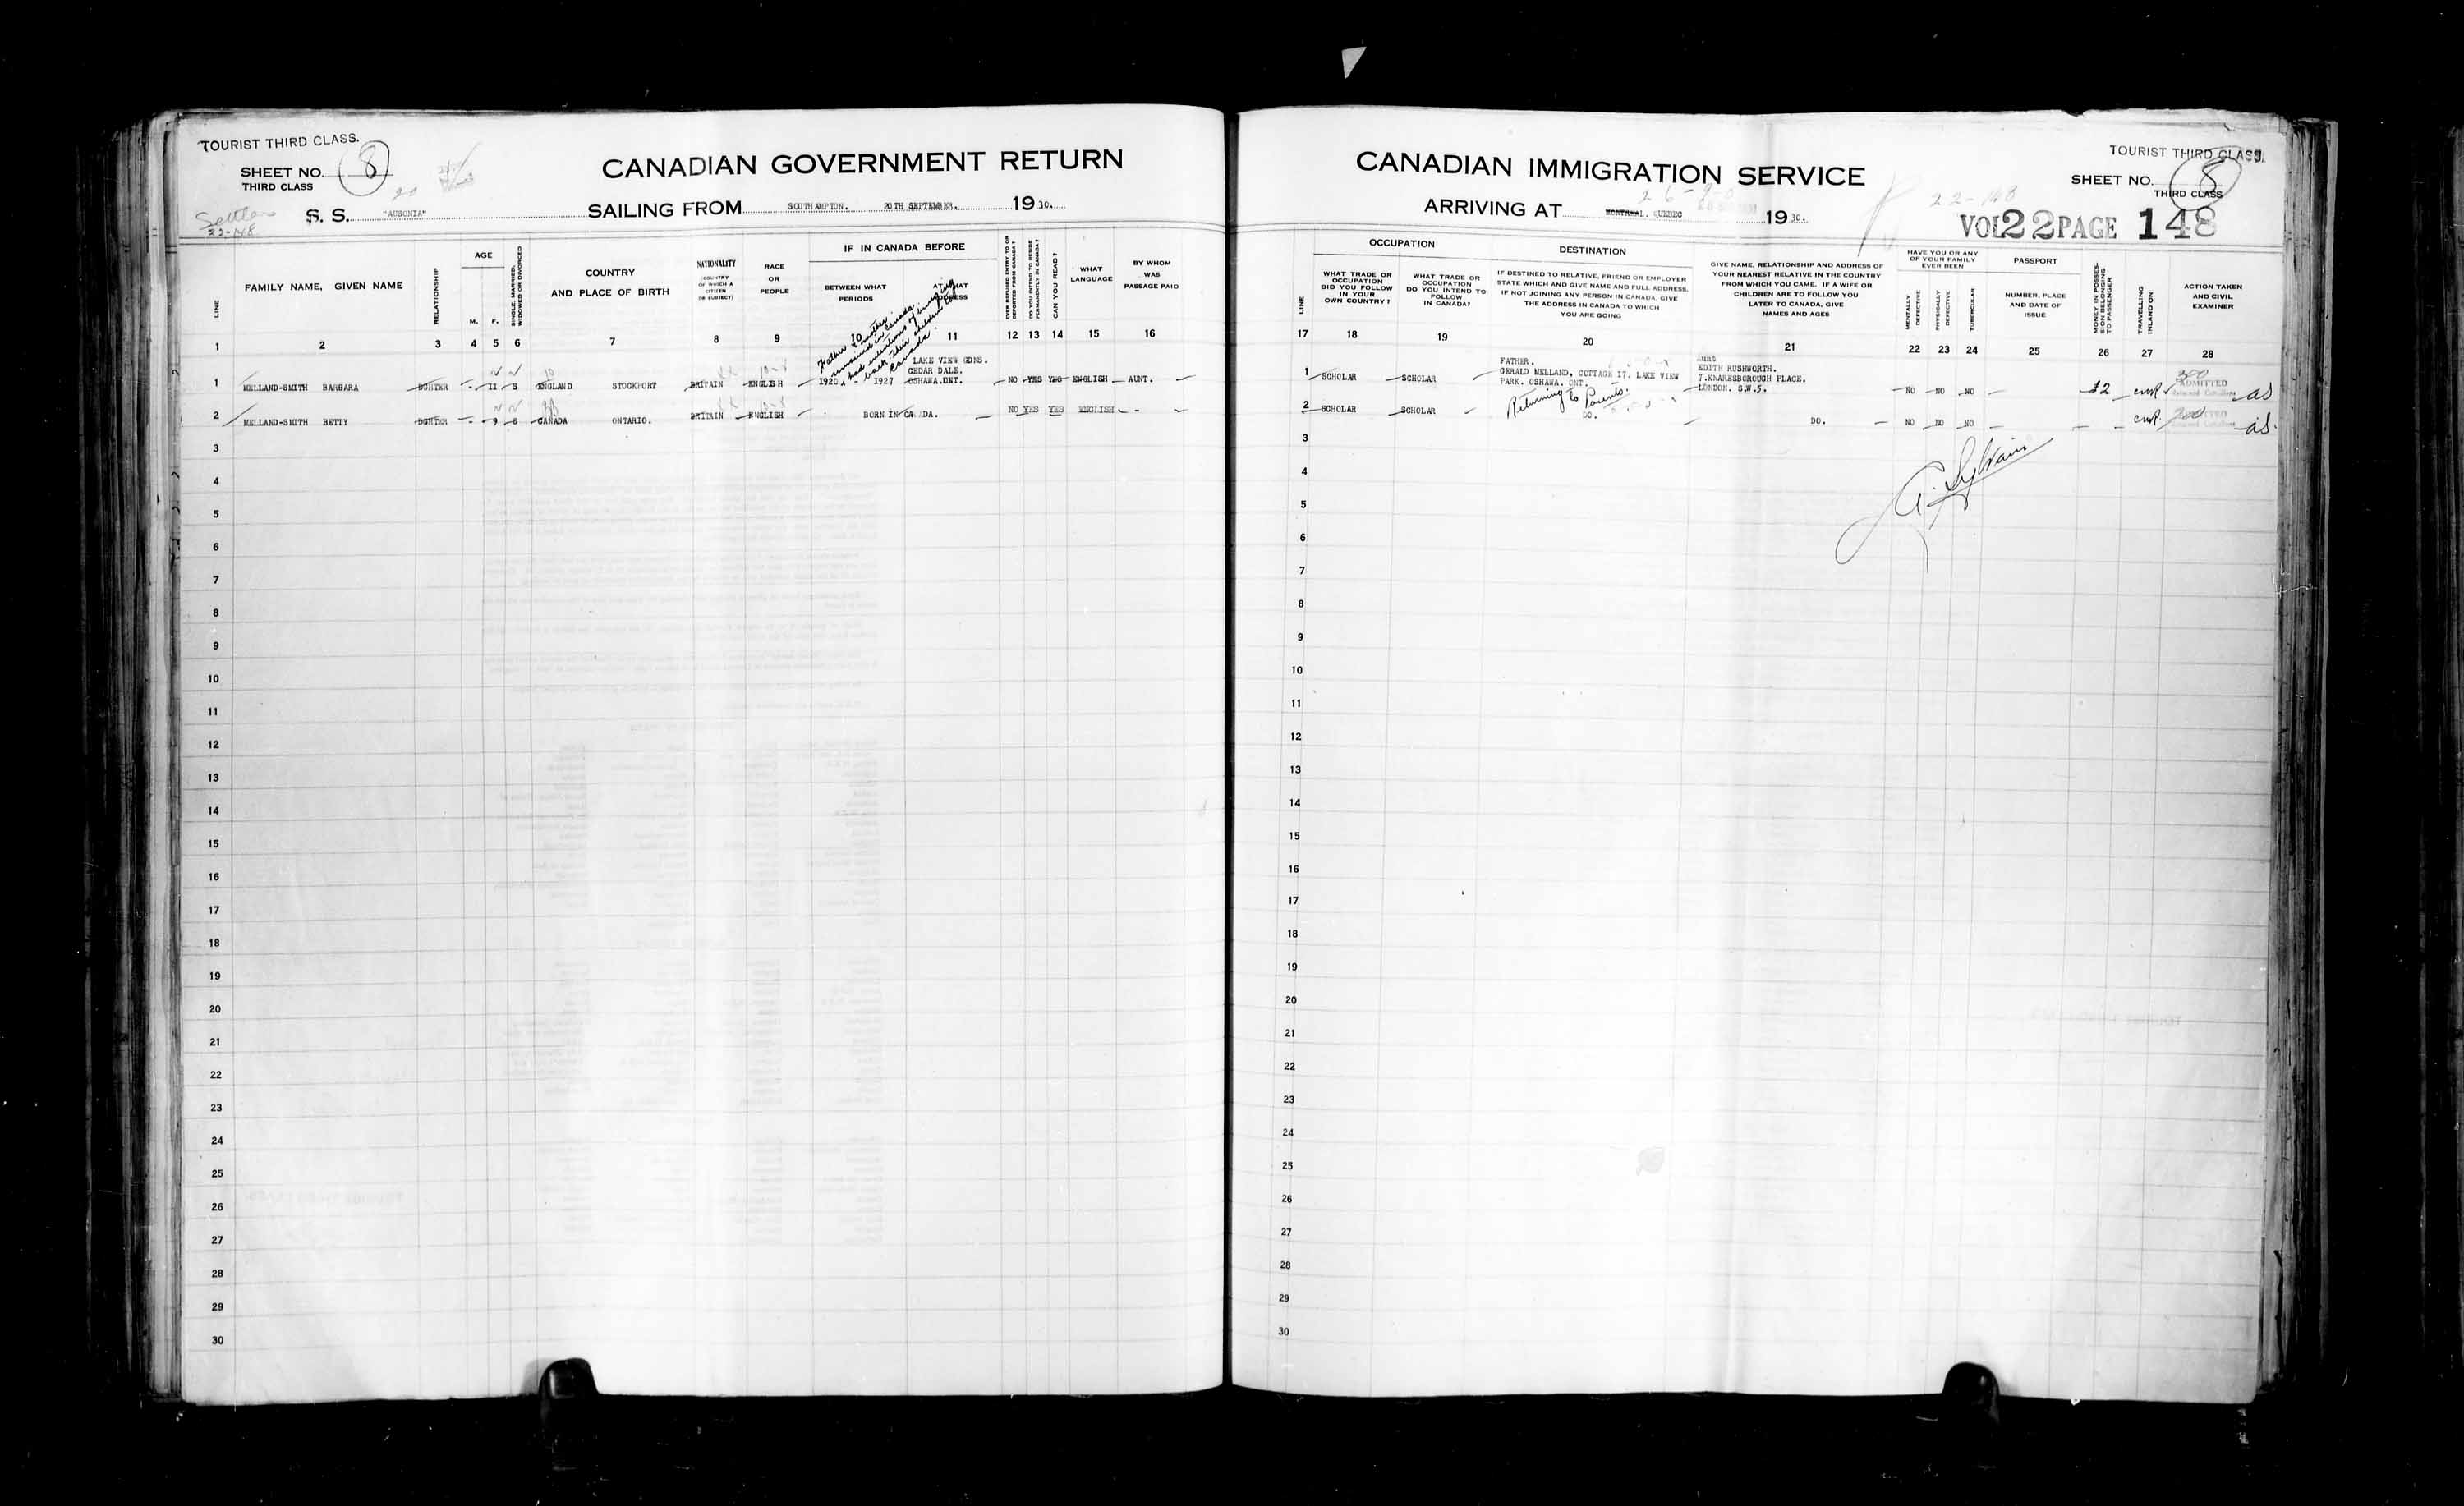 Title: Passenger Lists: Quebec City (1925-1935) - Mikan Number: 134839 - Microform: t-14769